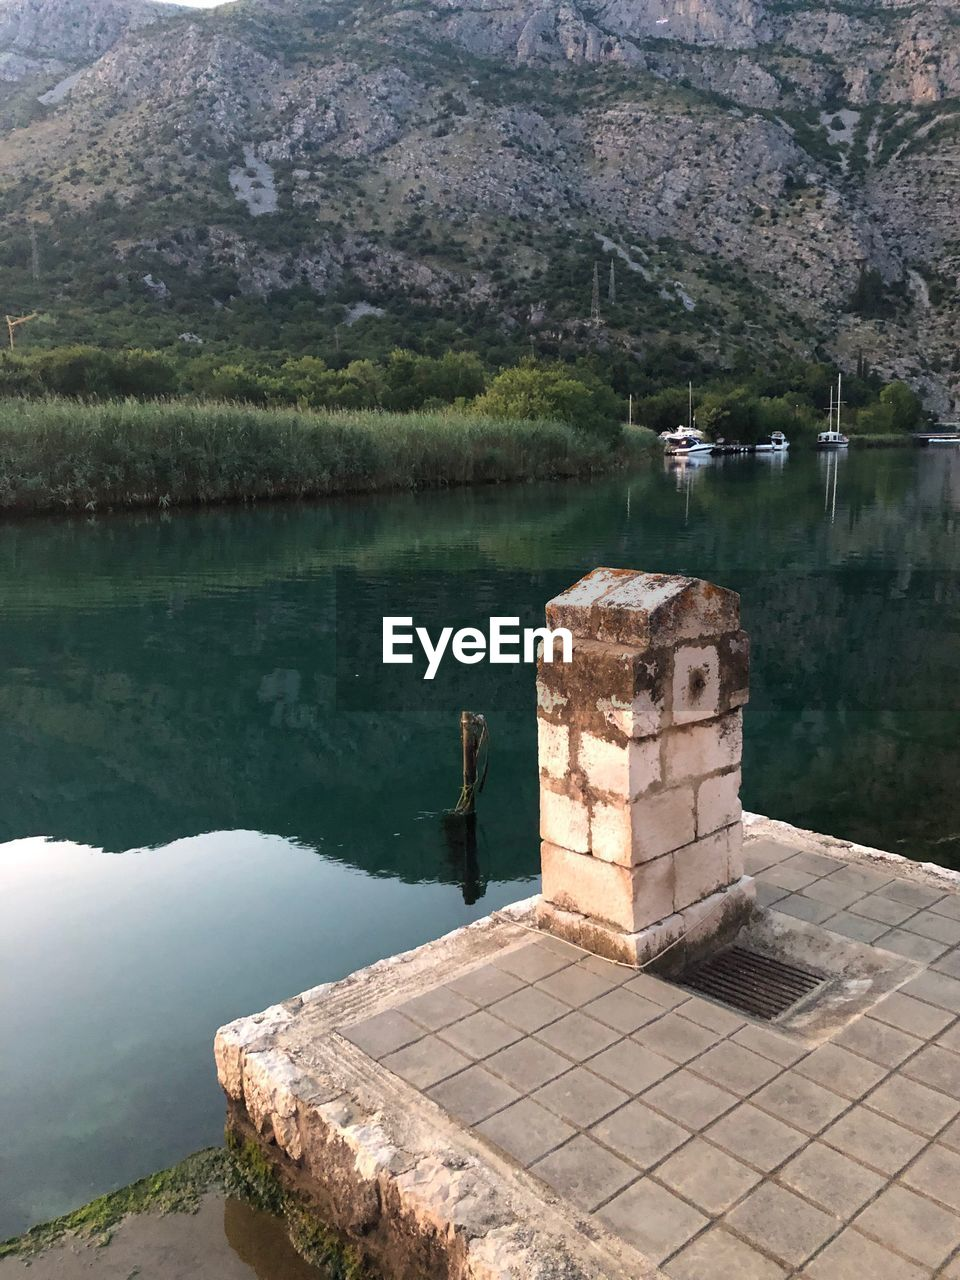 water, lake, nature, architecture, day, mountain, beauty in nature, reflection, built structure, scenics - nature, no people, tranquility, tree, tranquil scene, plant, outdoors, high angle view, travel destinations, building exterior